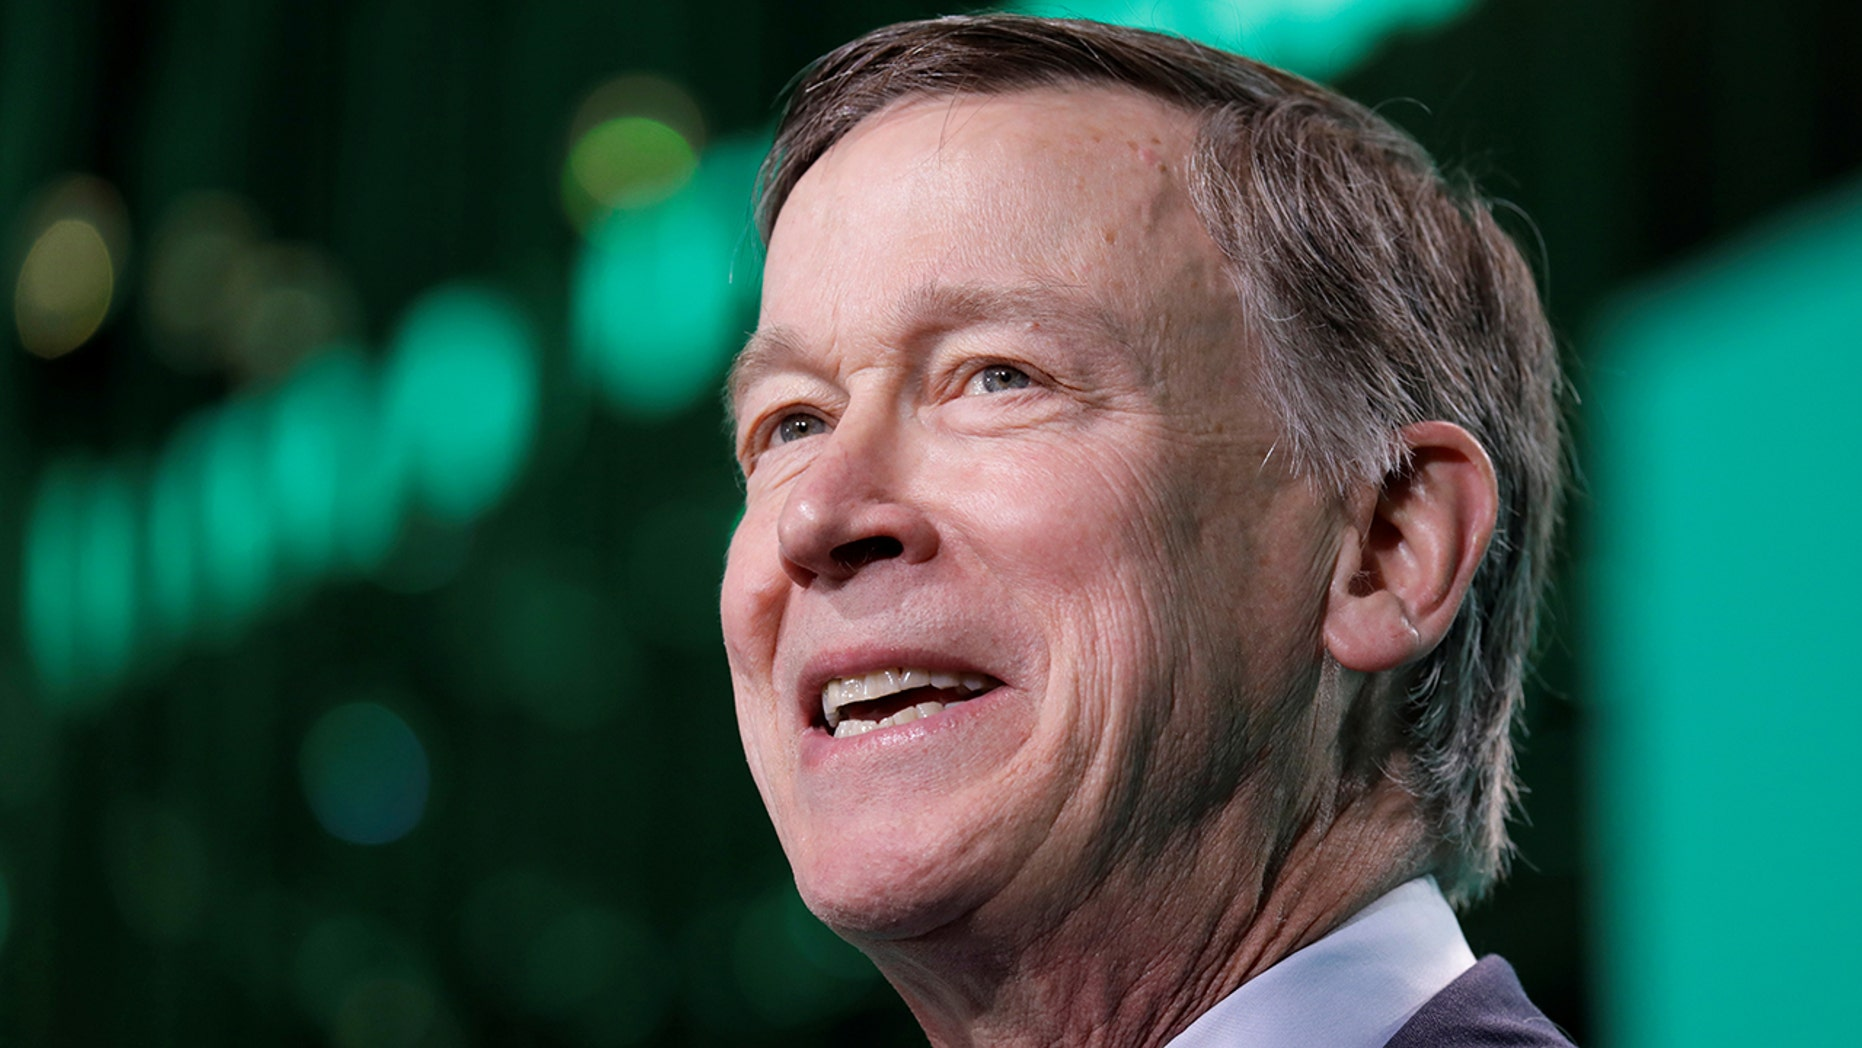 Former Gov. John Hickenlooper speaks at the United States Conference of Mayors winter meeting in Washington, U.S., January 24, 2019. REUTERS